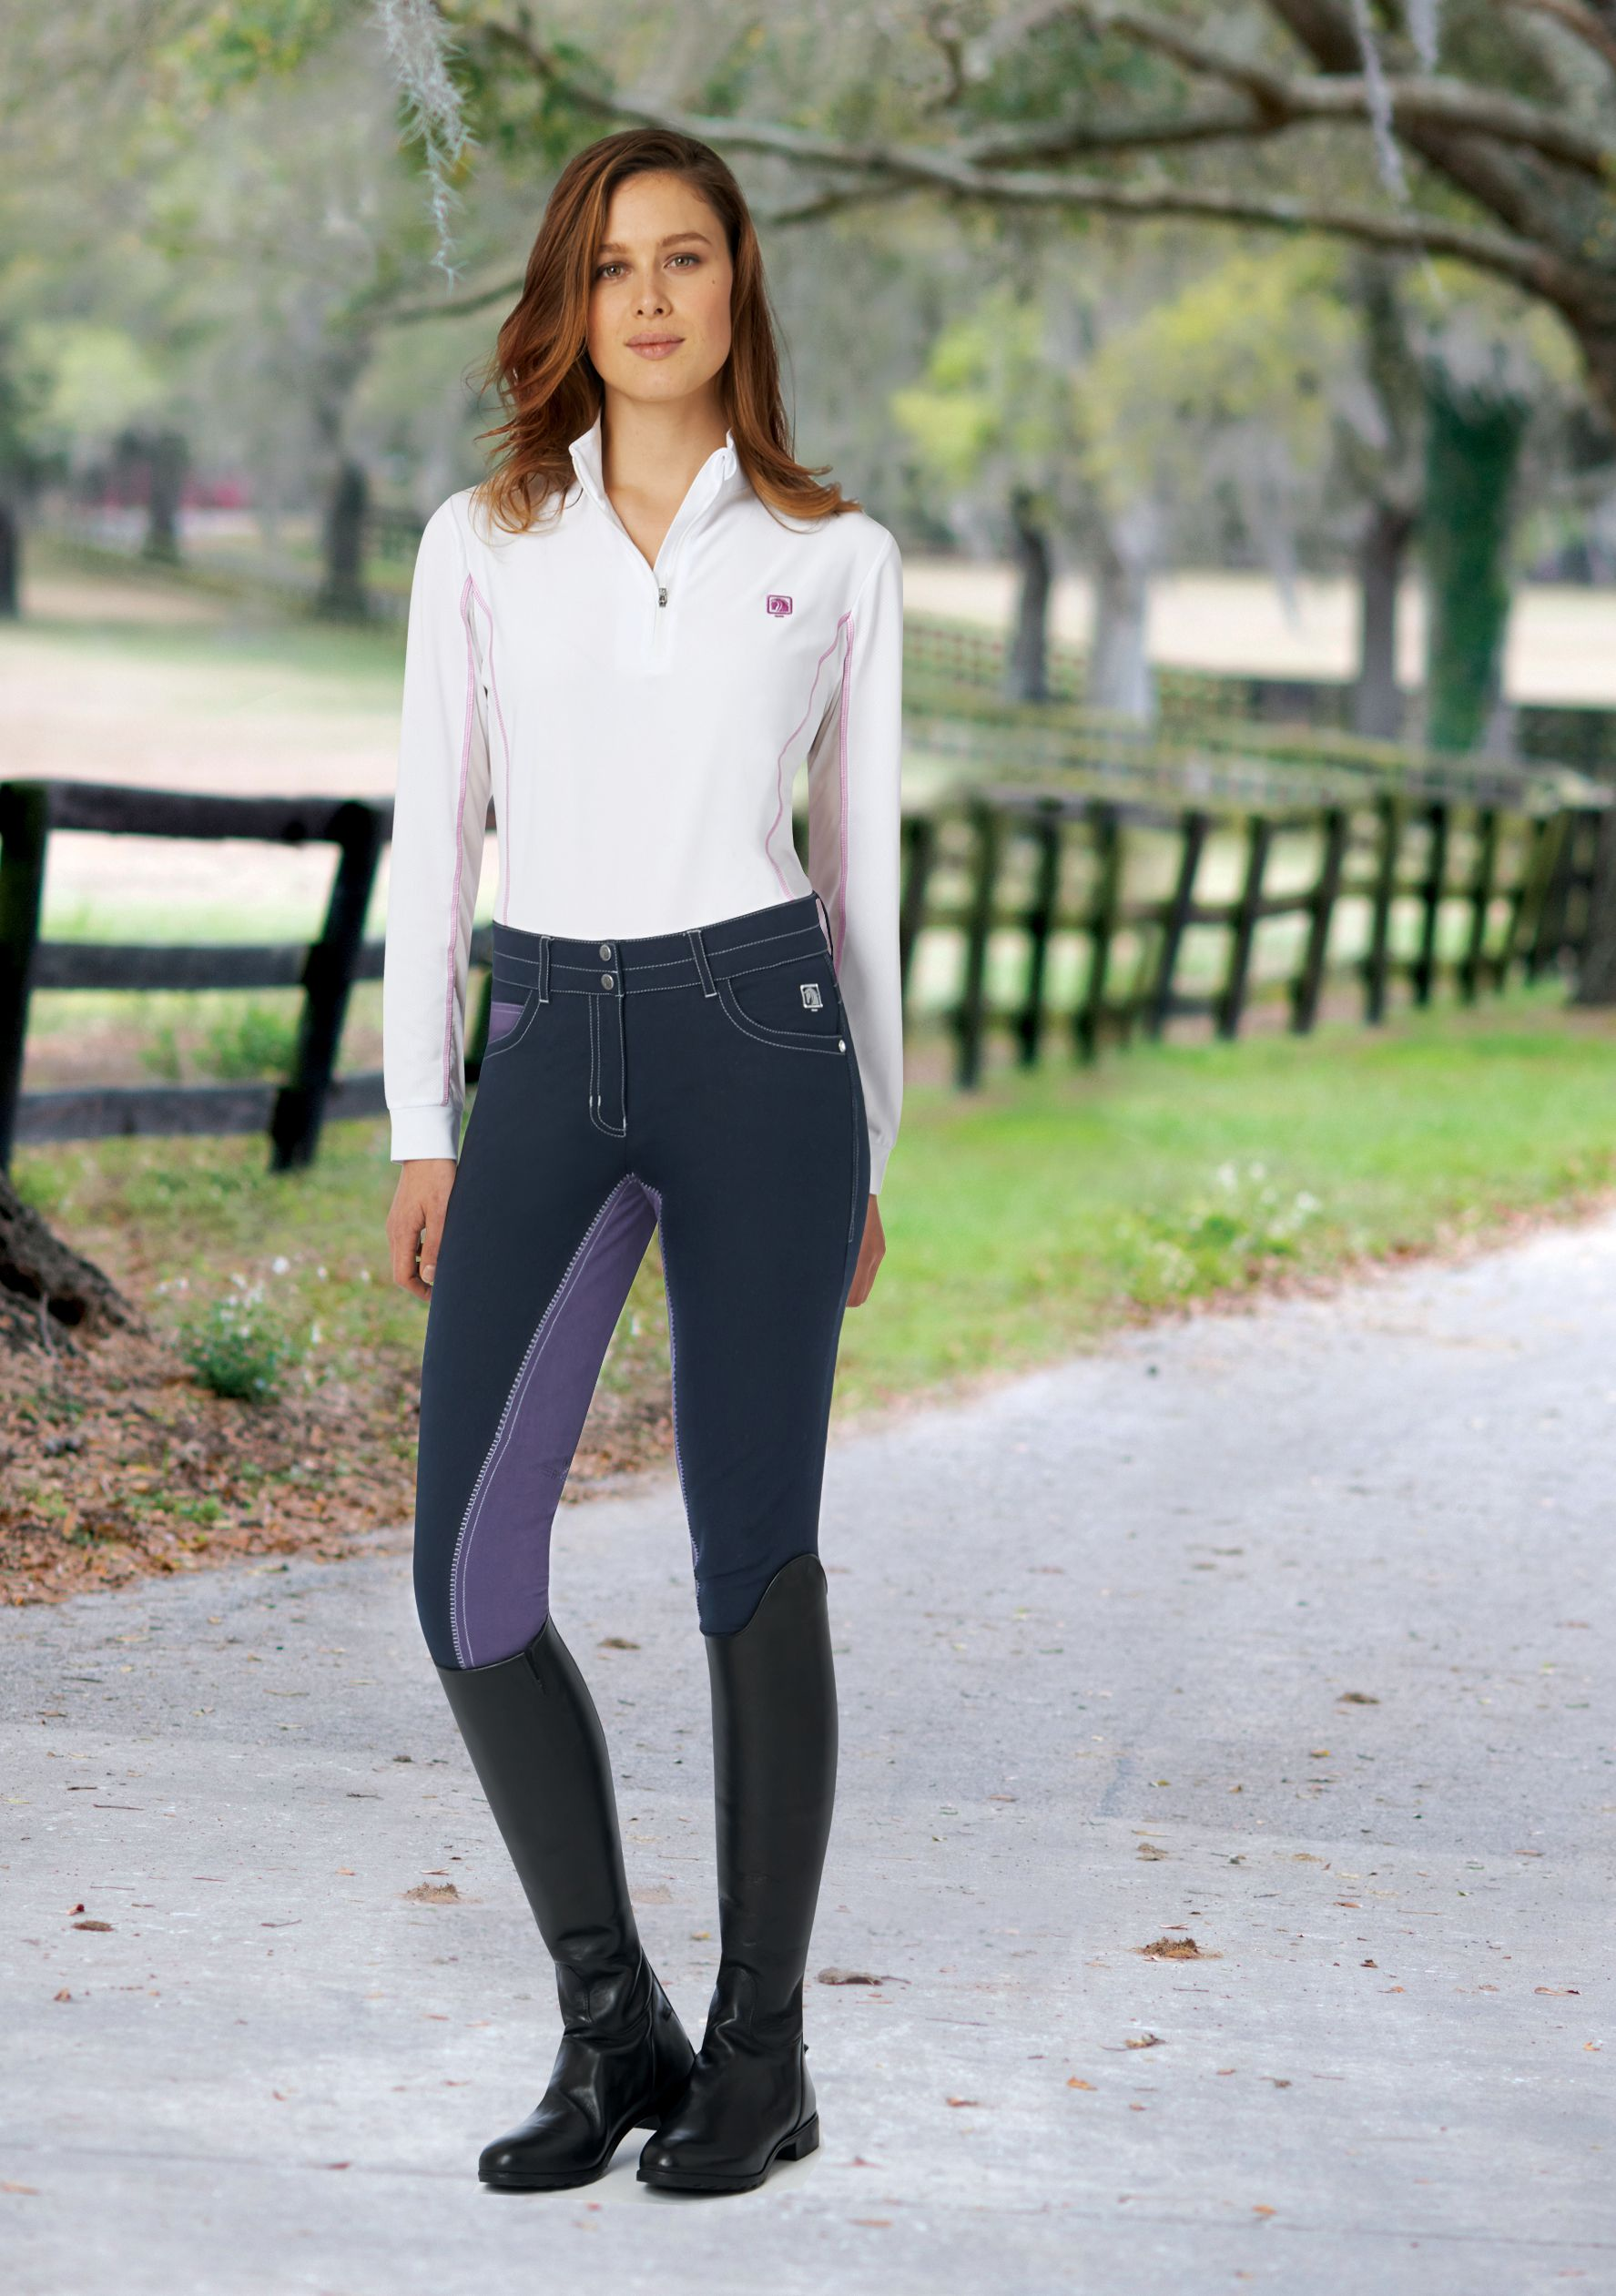 Romfh Ladies' St Tropez Full Seat Breech